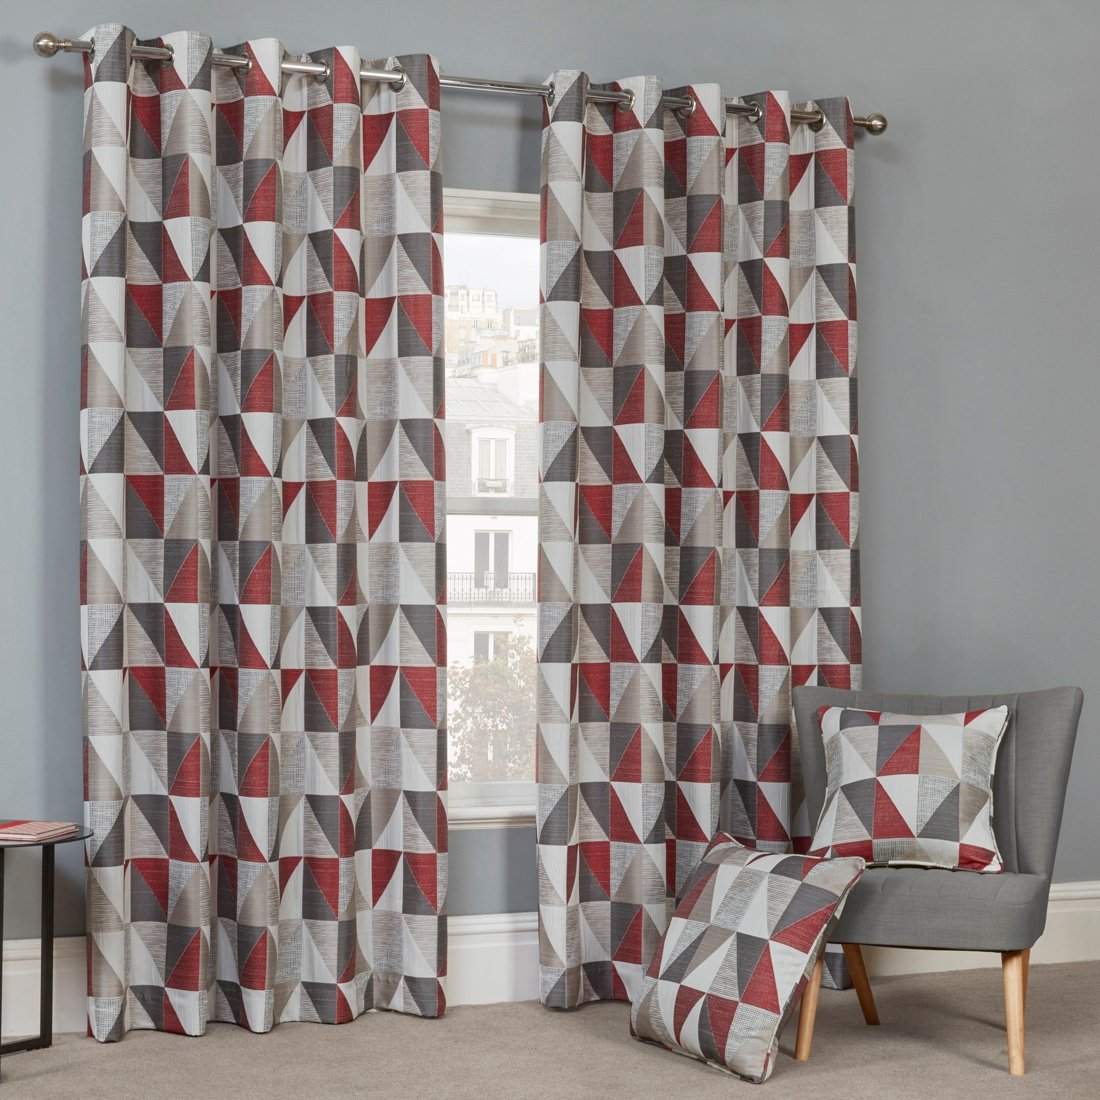 Urban Red Eyelet Curtains